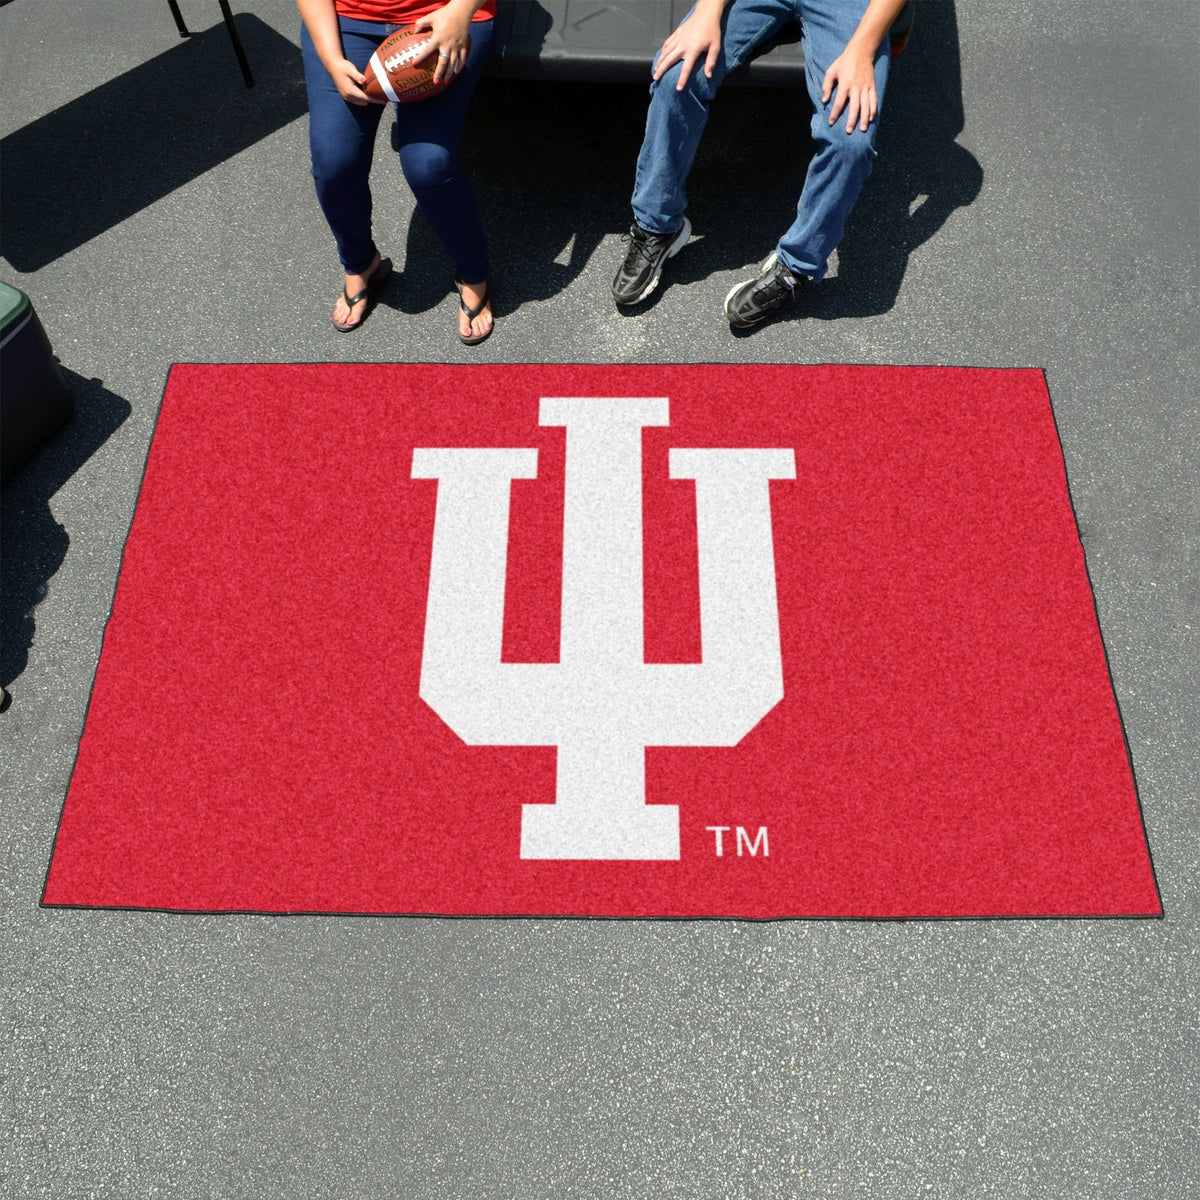 Collegiate - Ulti-Mat: A - L Collegiate Mats, Rectangular Mats, Ulti-Mat, Collegiate, Home Fan Mats Indiana